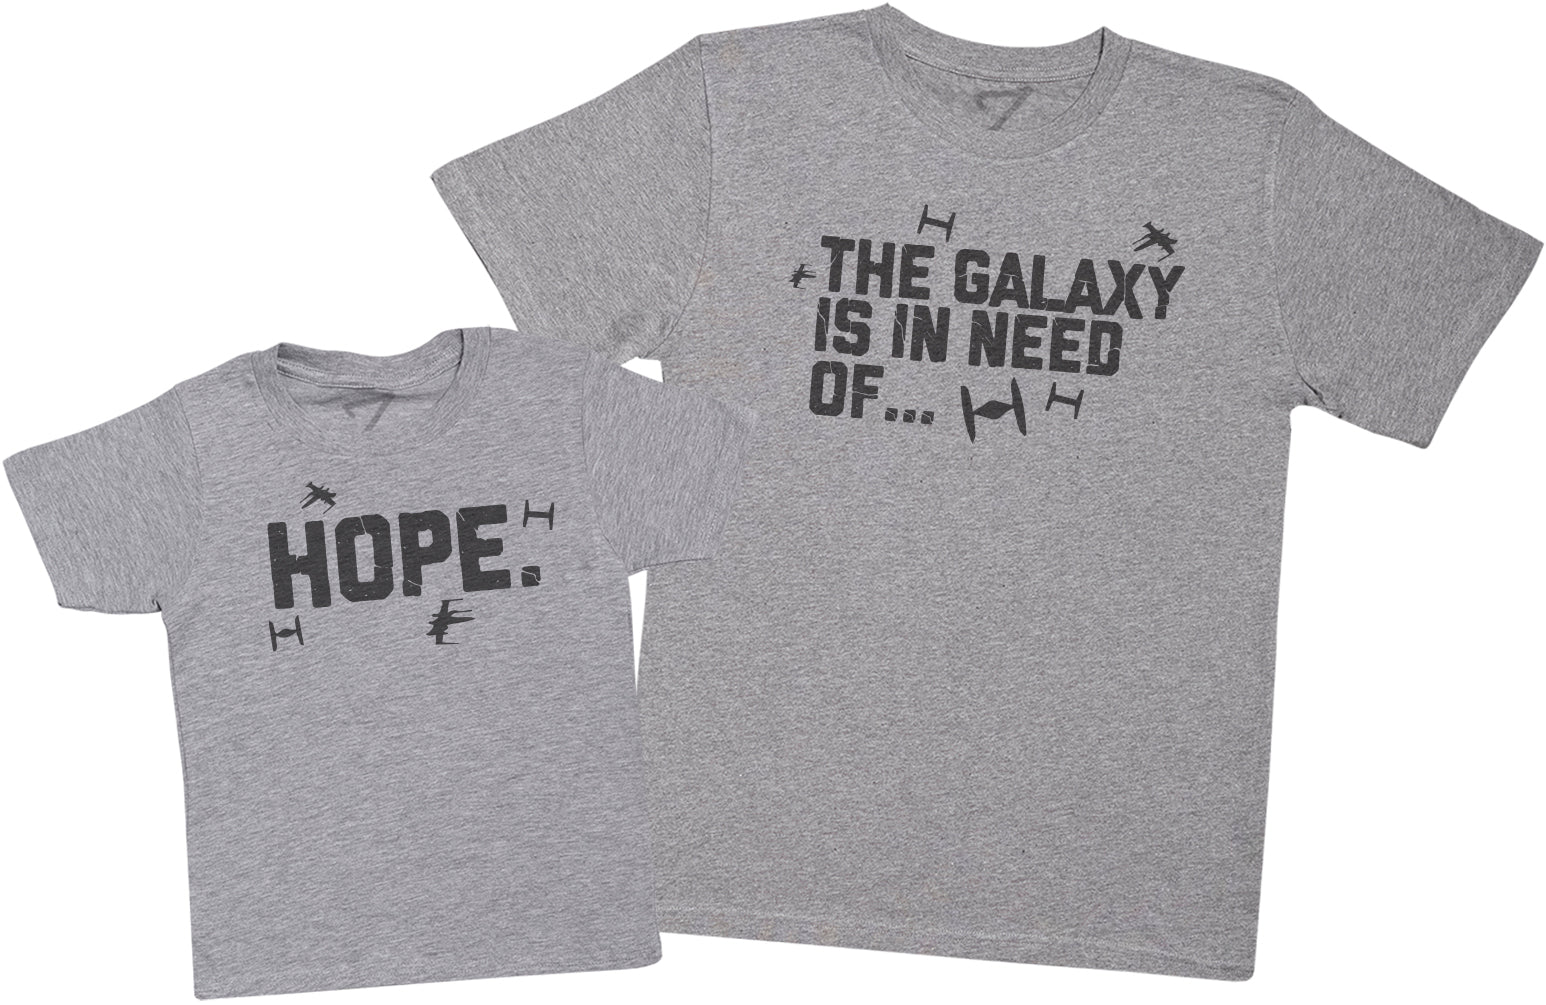 The Galaxy Is In Need Of - Mens T Shirt & Kid's T-Shirt